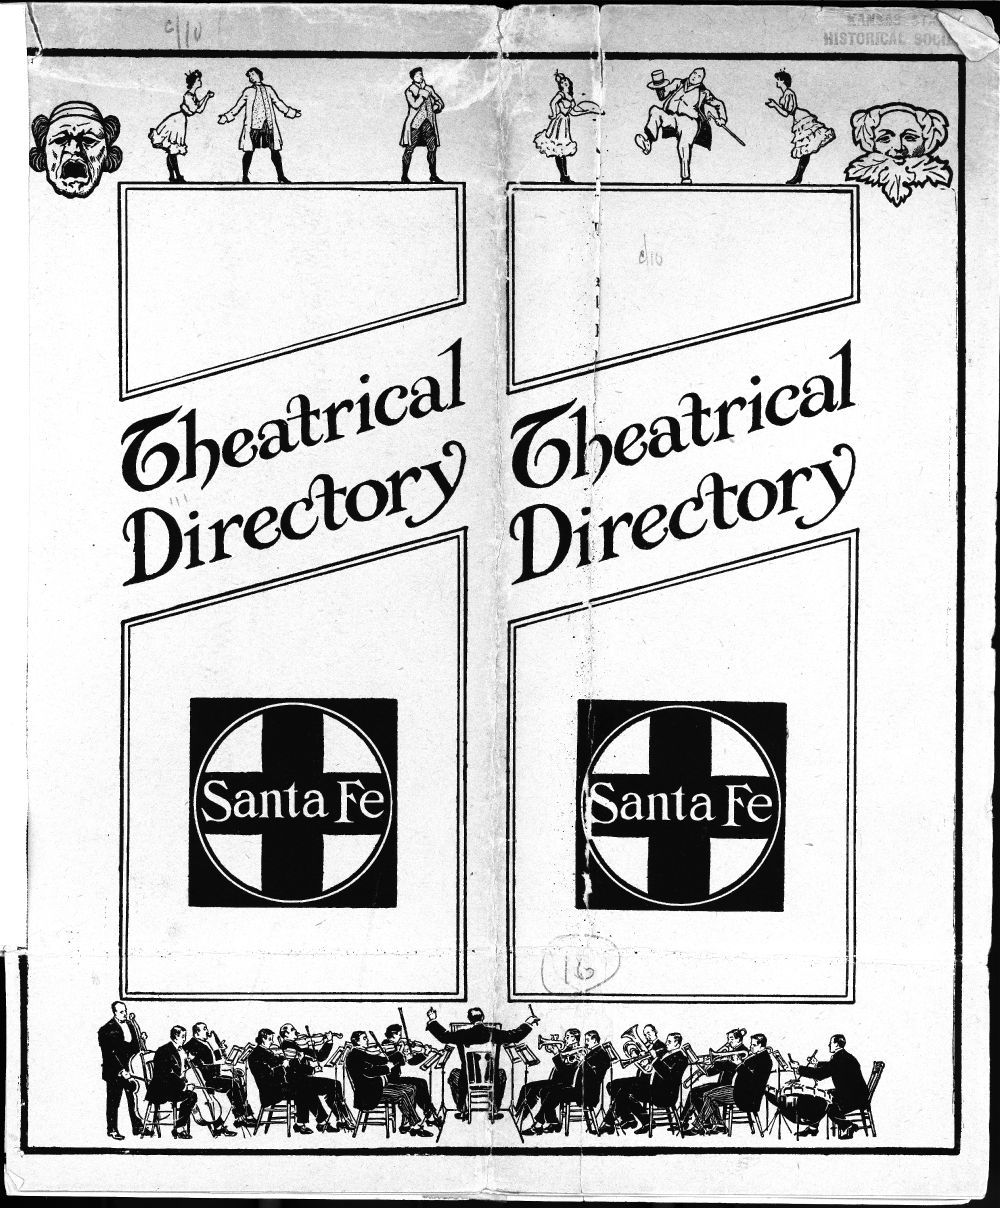 Atchison, Topeka and Santa Fe Railway Company's theatrical directory - Cover